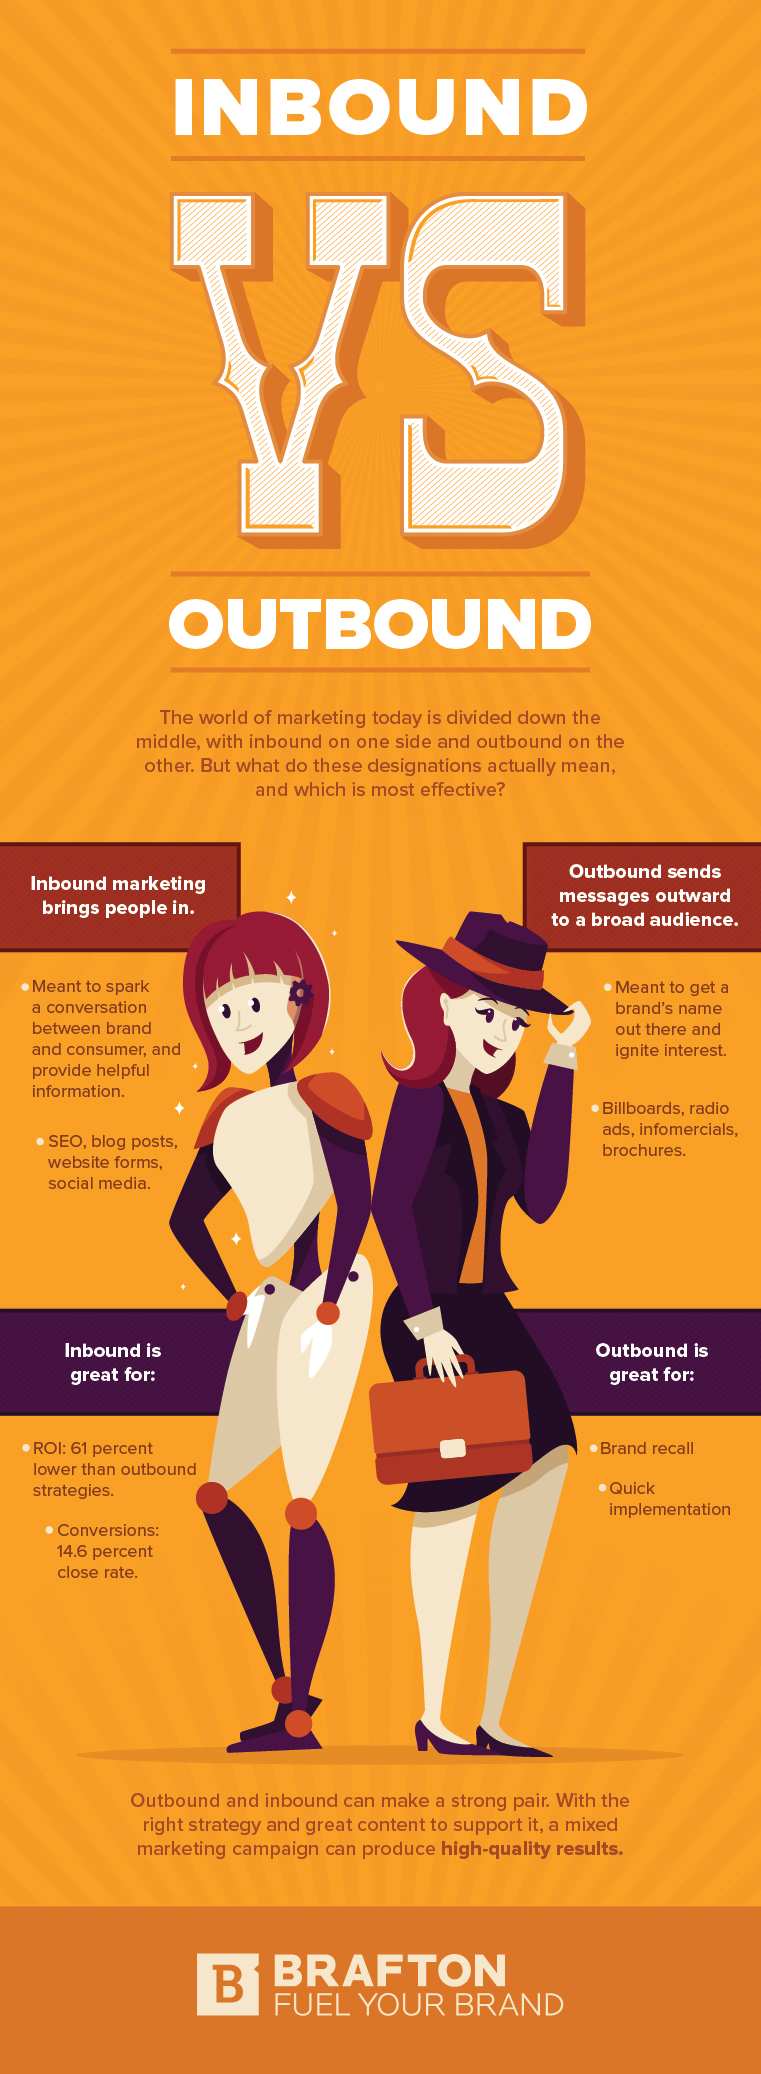 Inbound vs outbound infographic